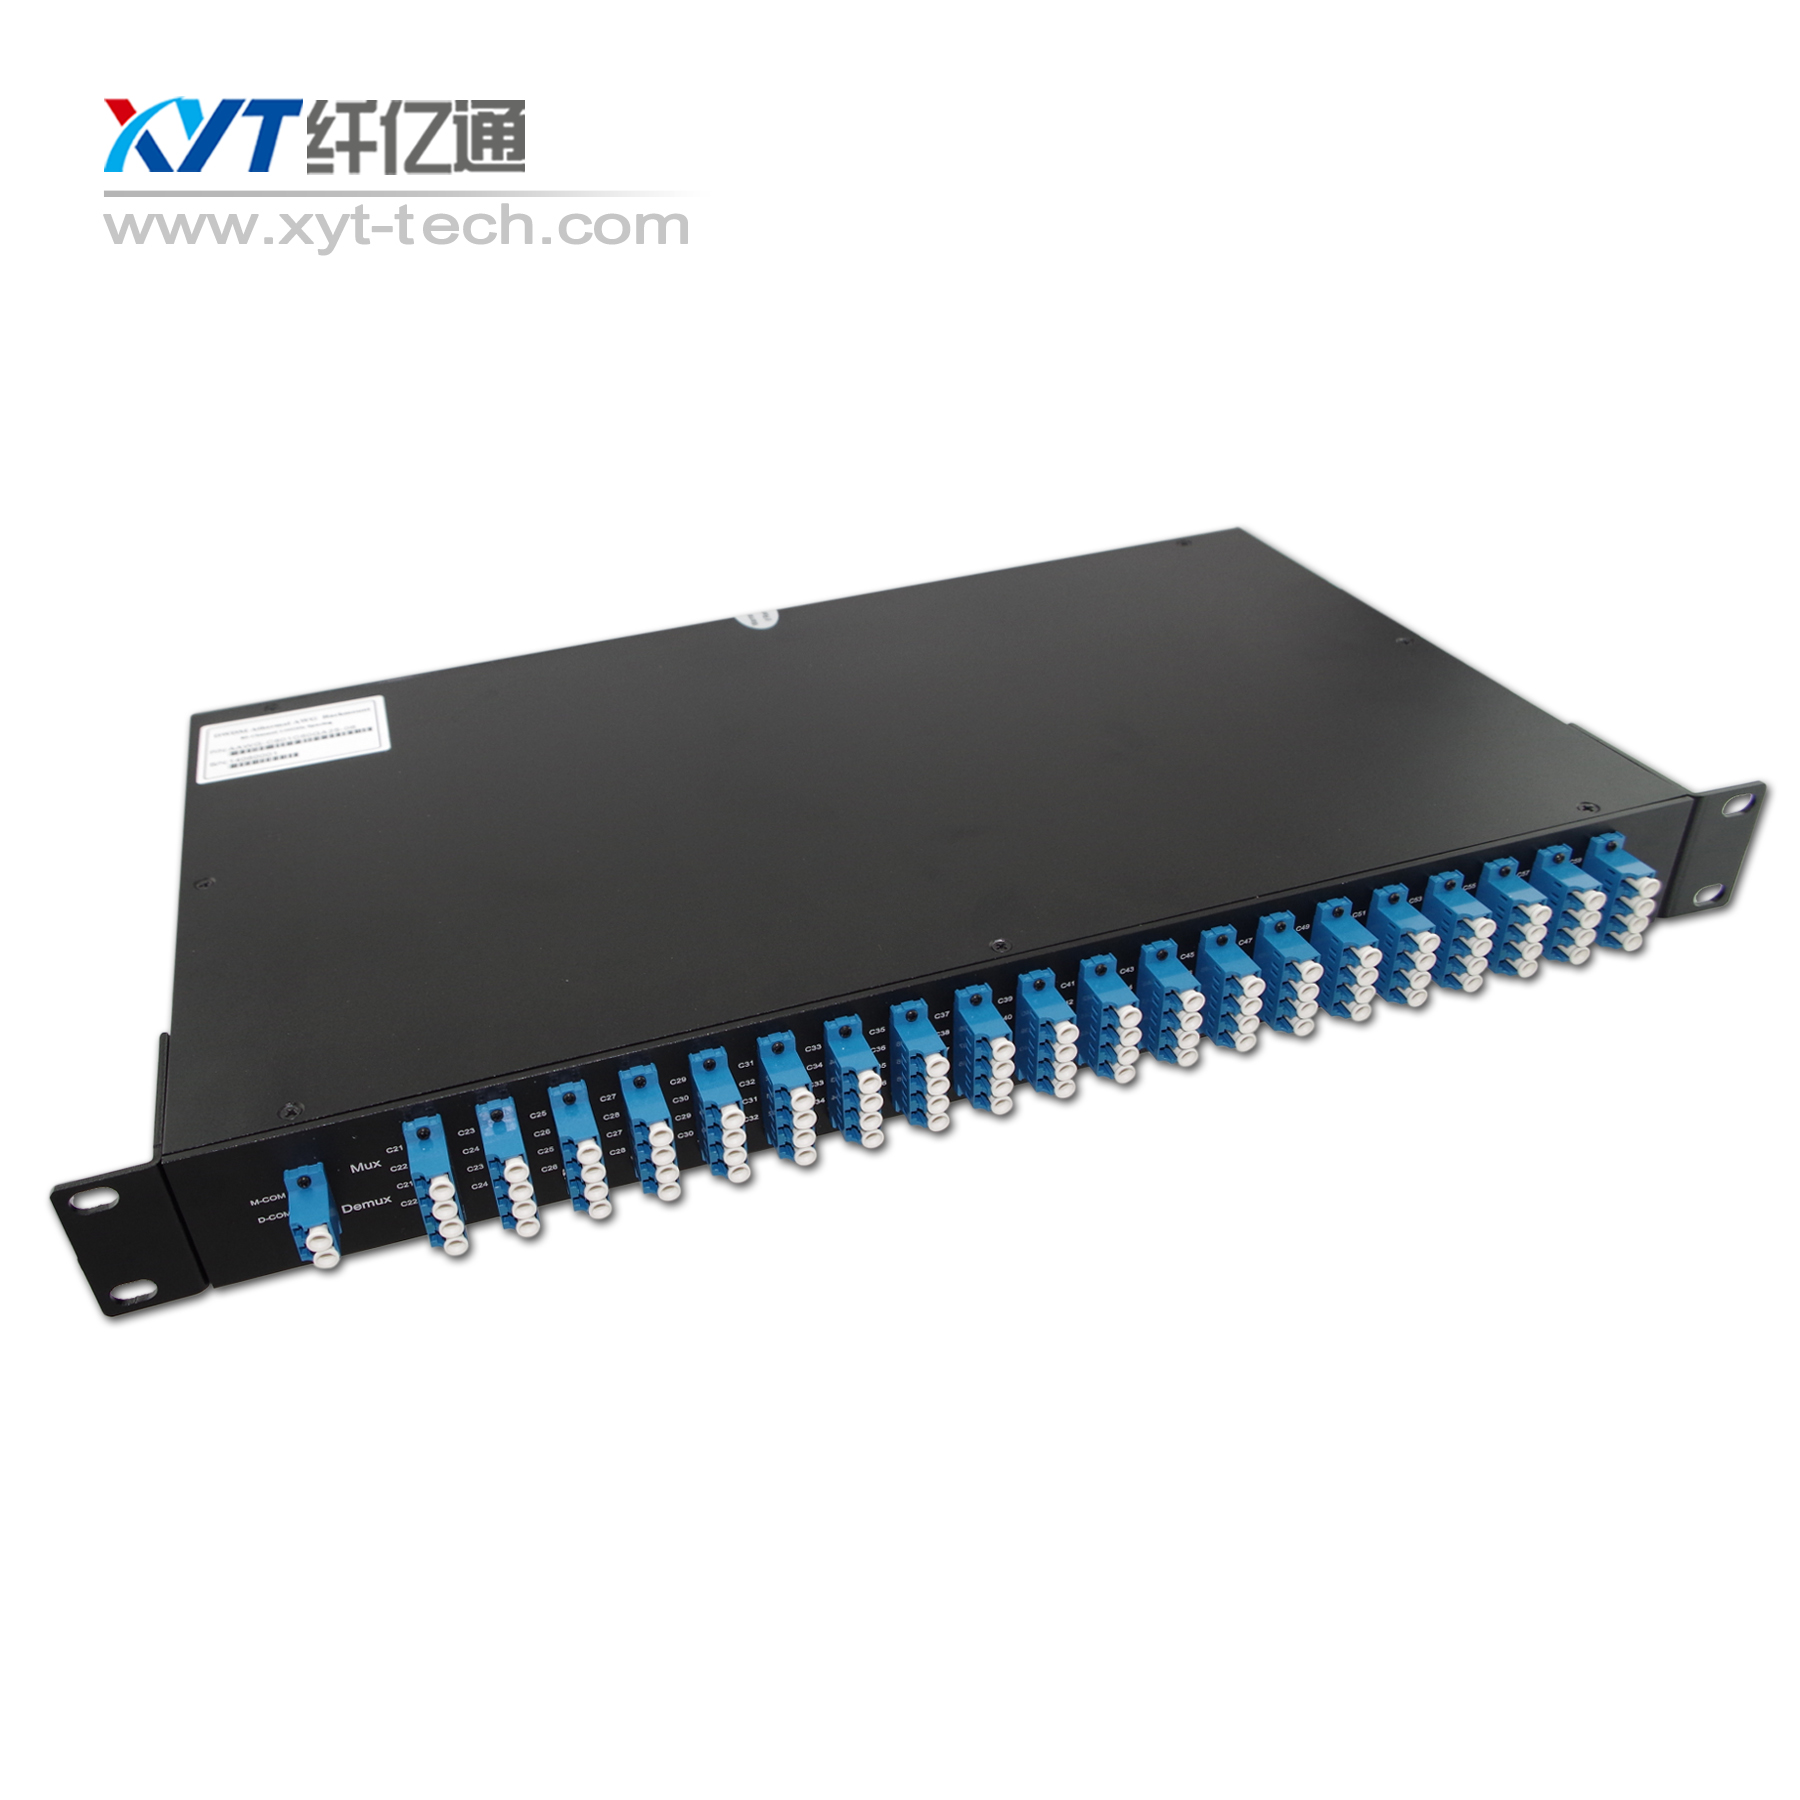 Passive device DWDM 1U Rackmount 40channel DWDM MUX DEMUX 100Ghz dual/single fiber